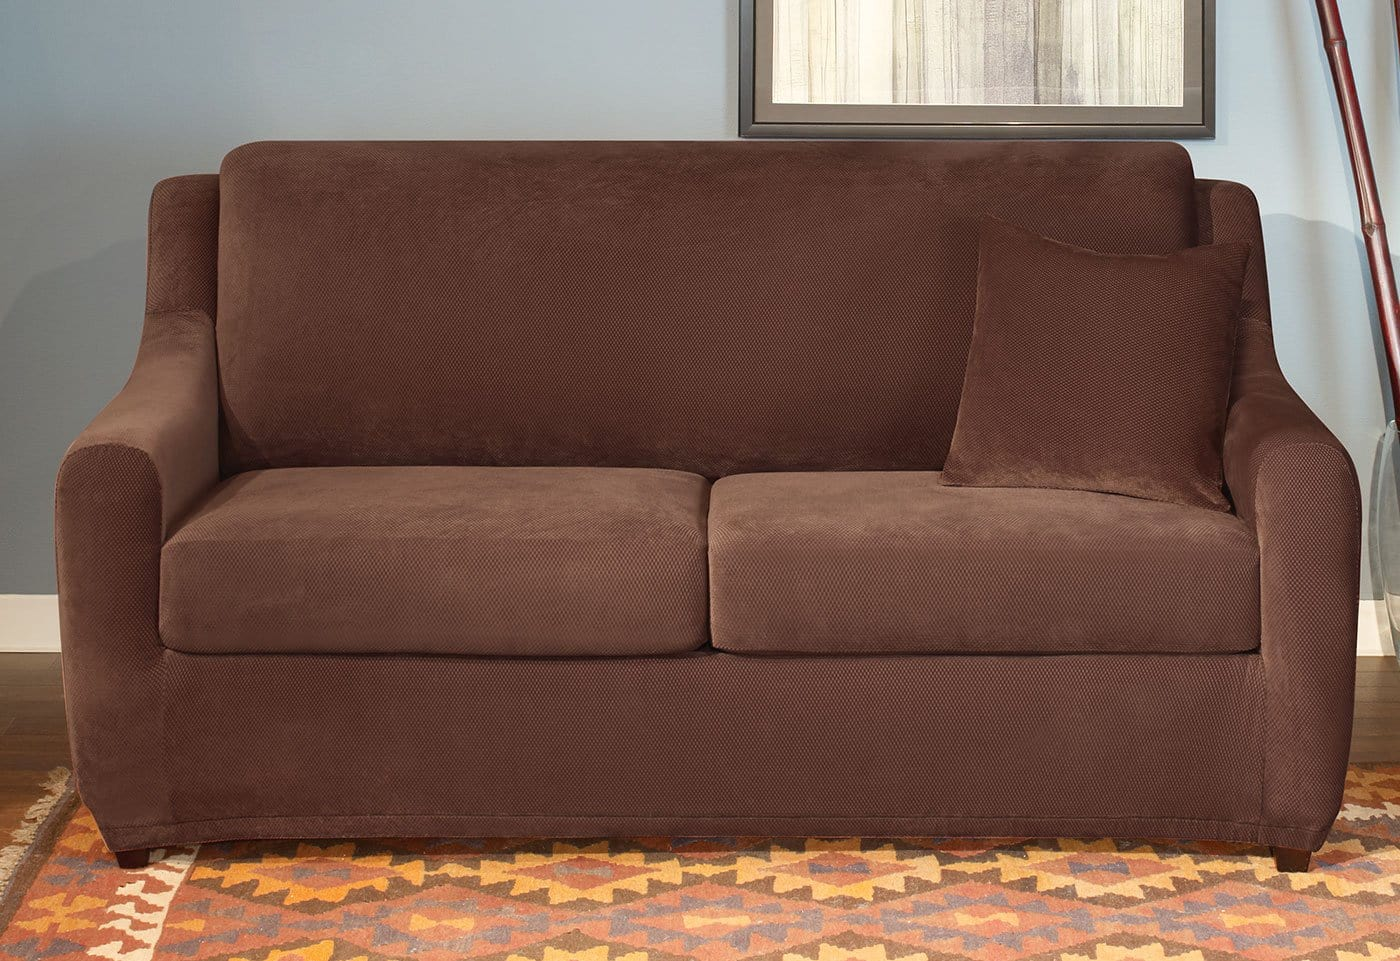 dark added plus has been sleeper spaces successfully your pdp qty full sofa cart grey living london twin to